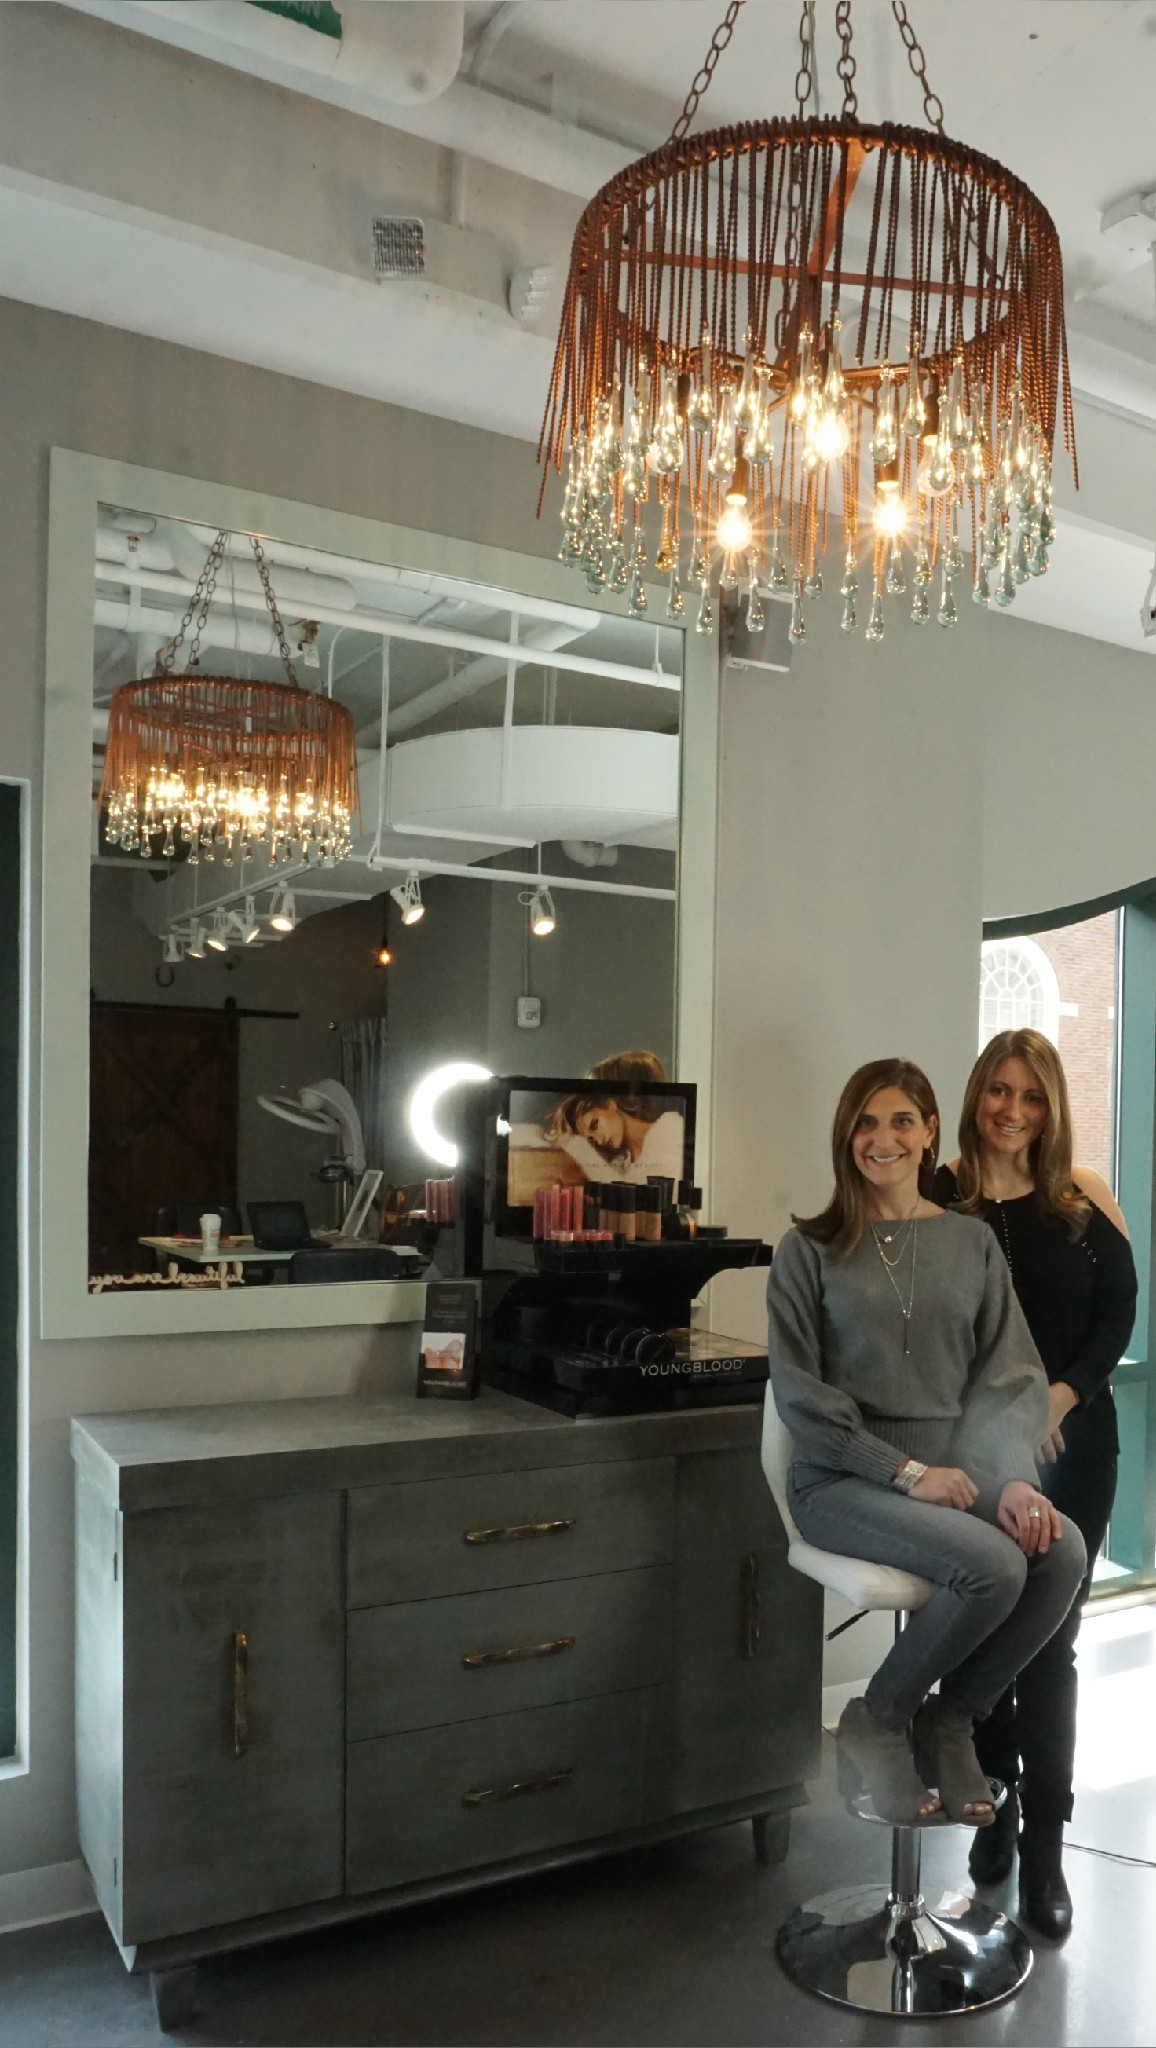 Salon Chic Whip Salon Is Rustic Chic In Westport Thanks To Romeo Baglio